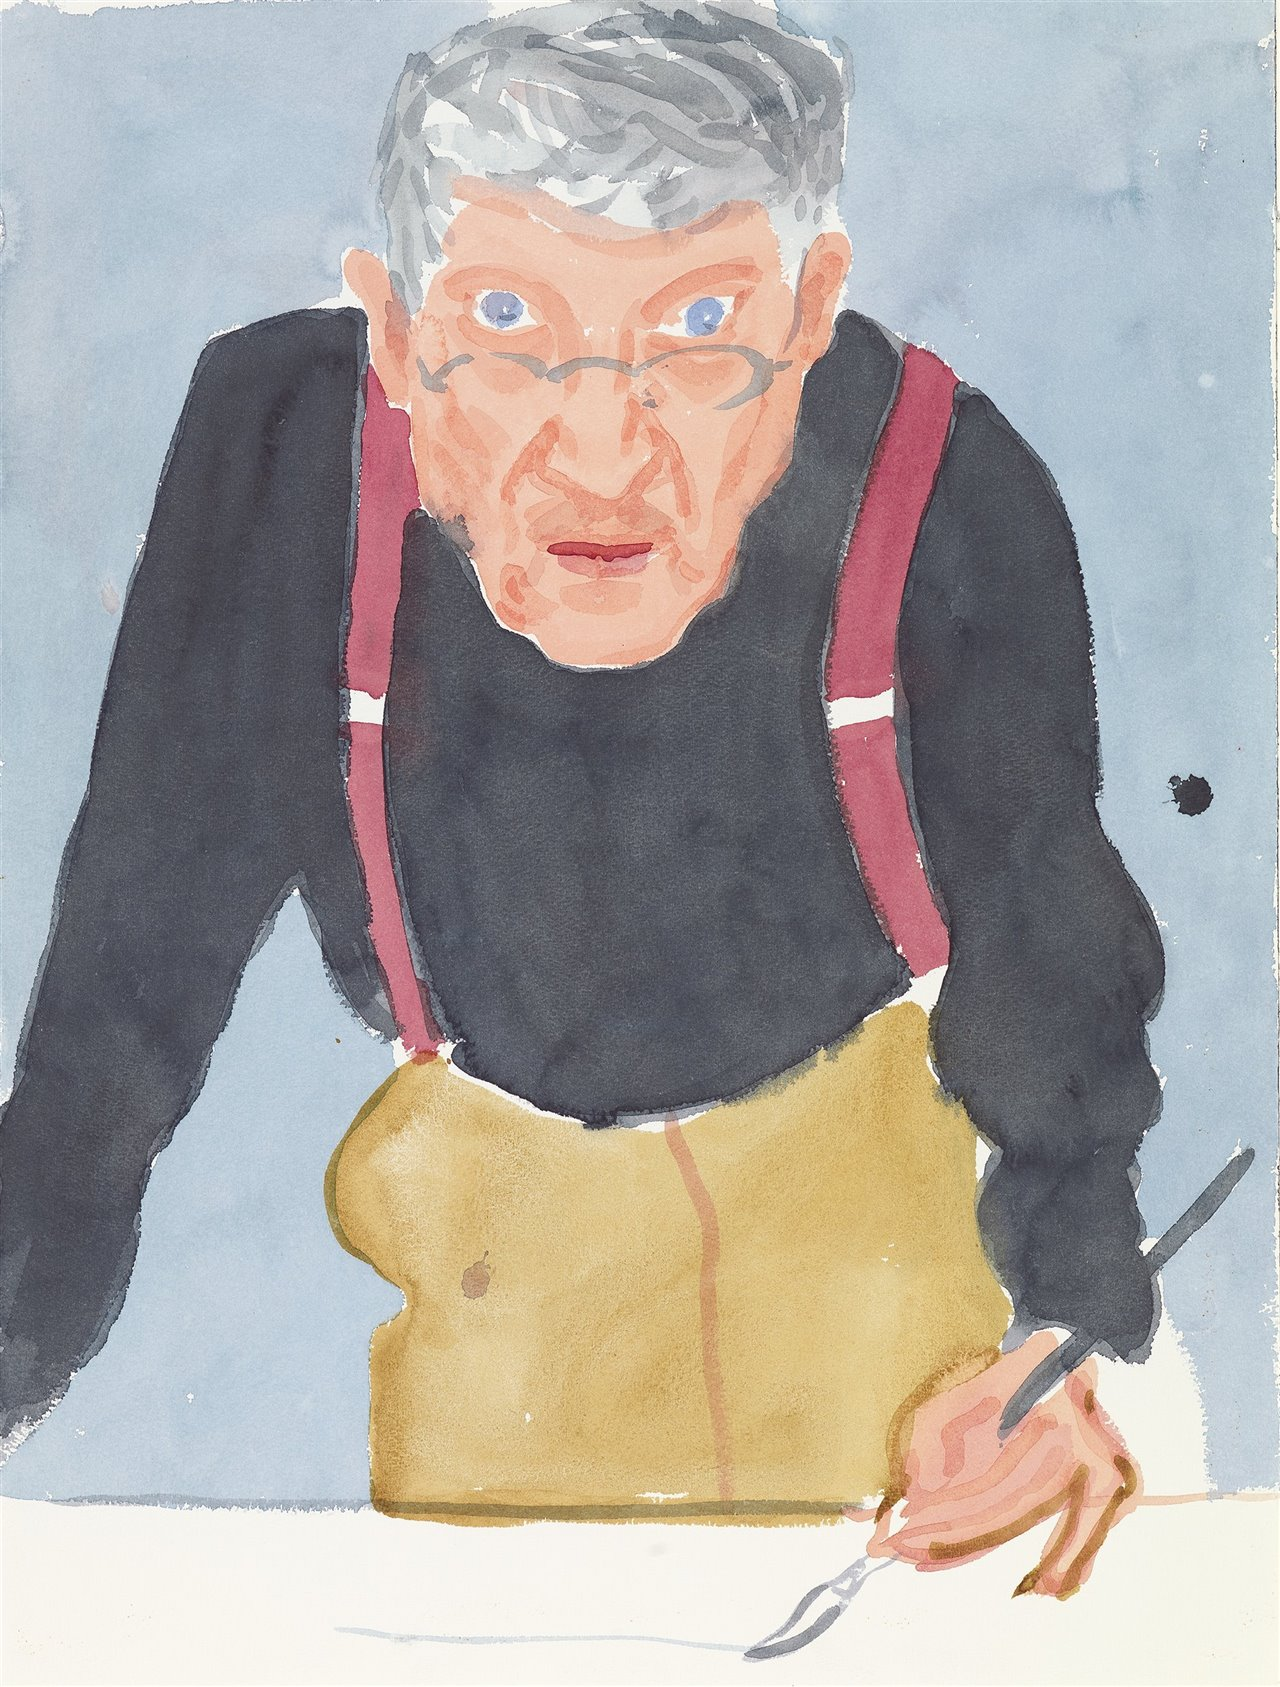 Self Portrait with Red Braces, 2003